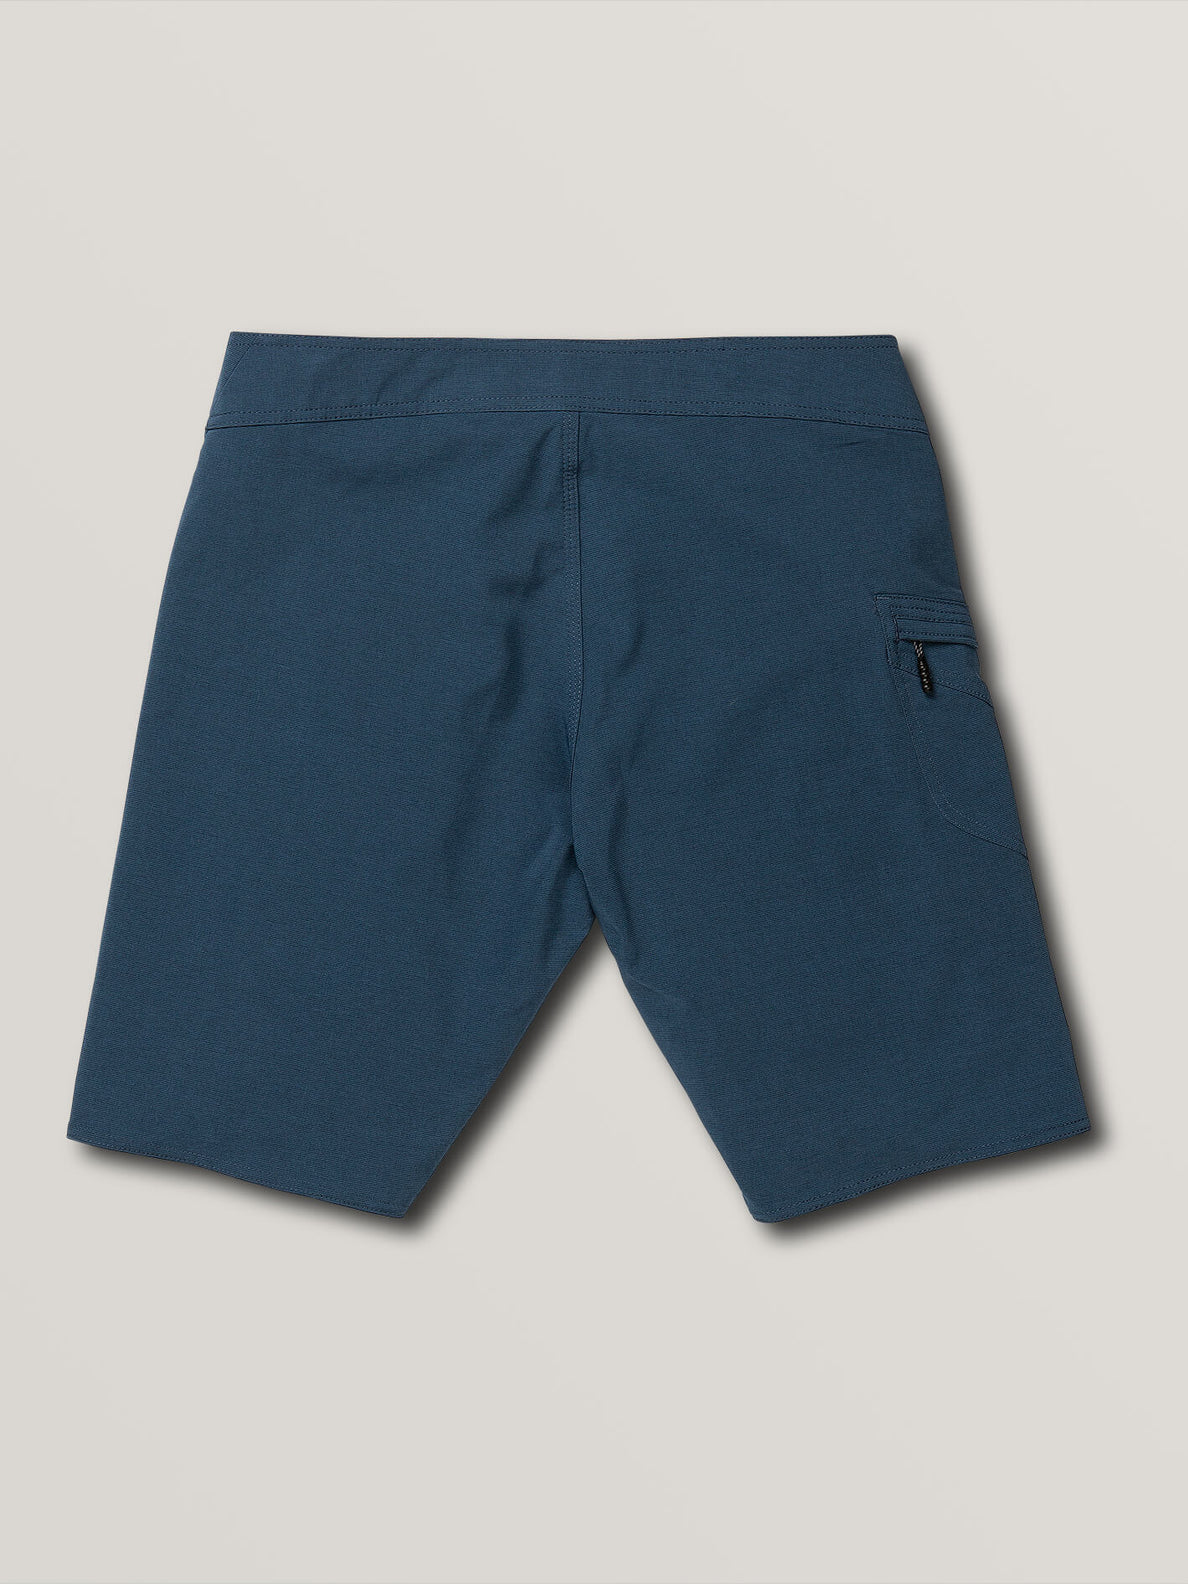 Lido Solid Mod Trunks - Smokey Blue (A0811926_SMB) [B]